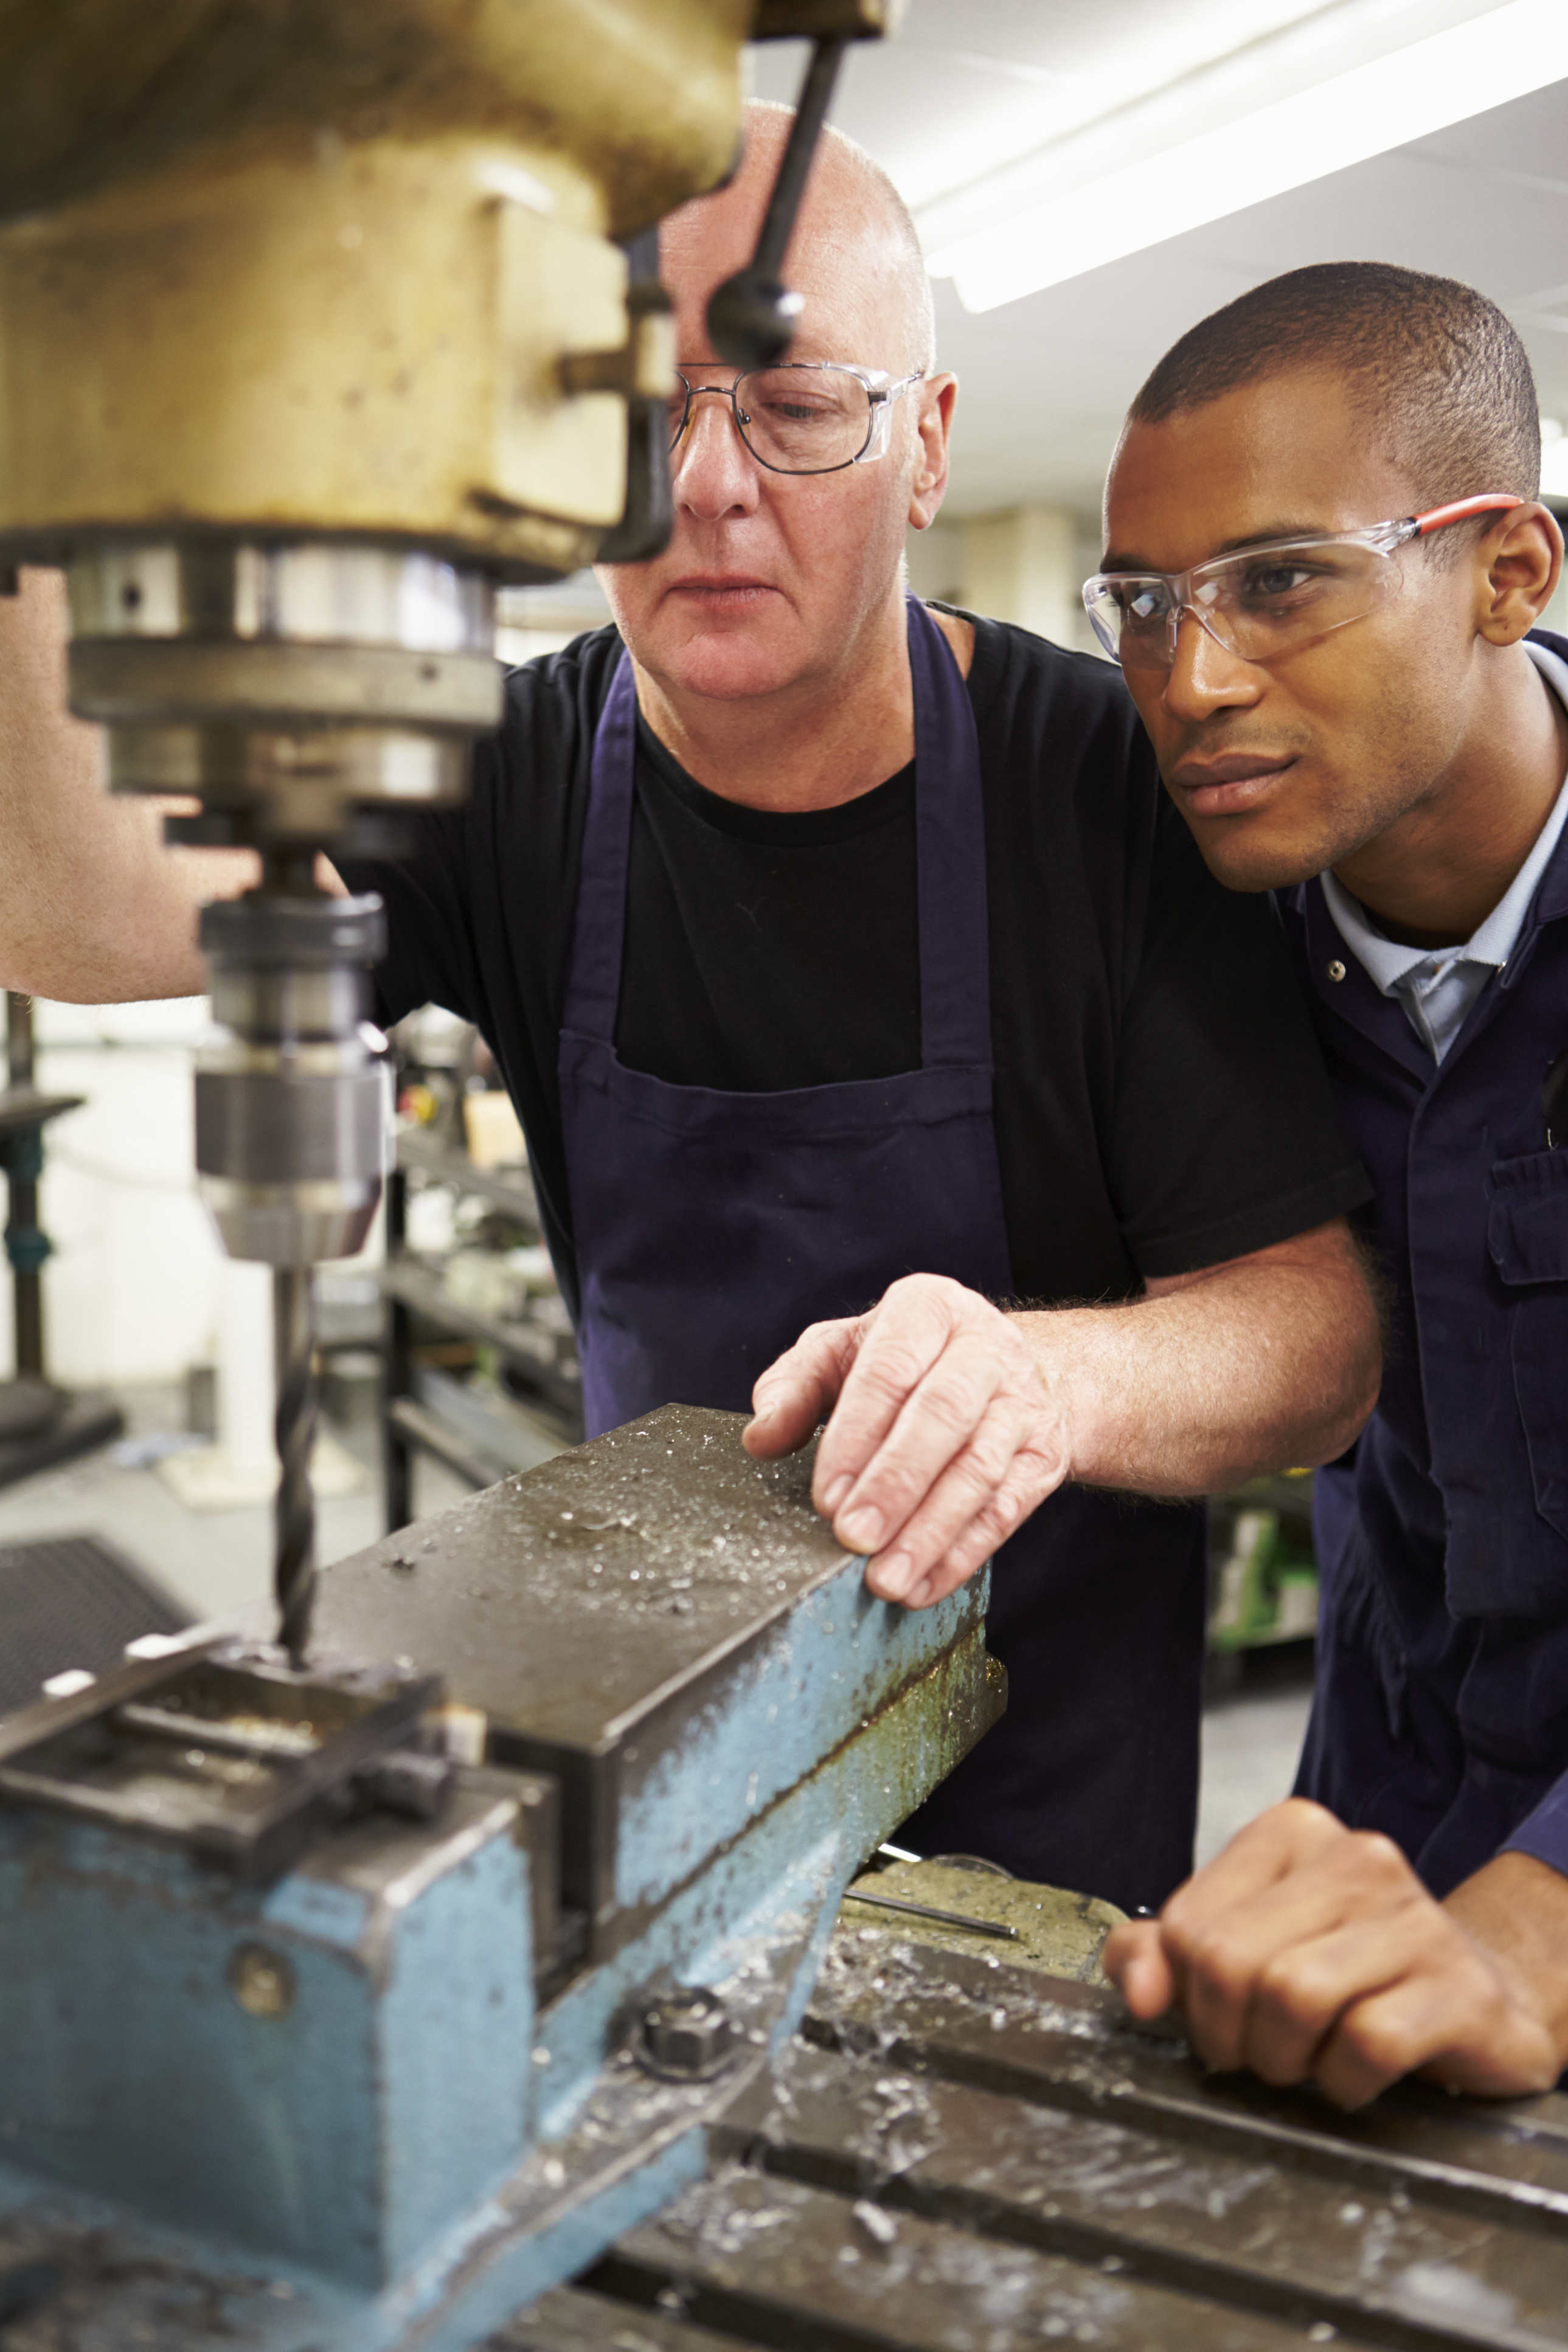 Great Cnc Jobs That Are In Demand Pmi